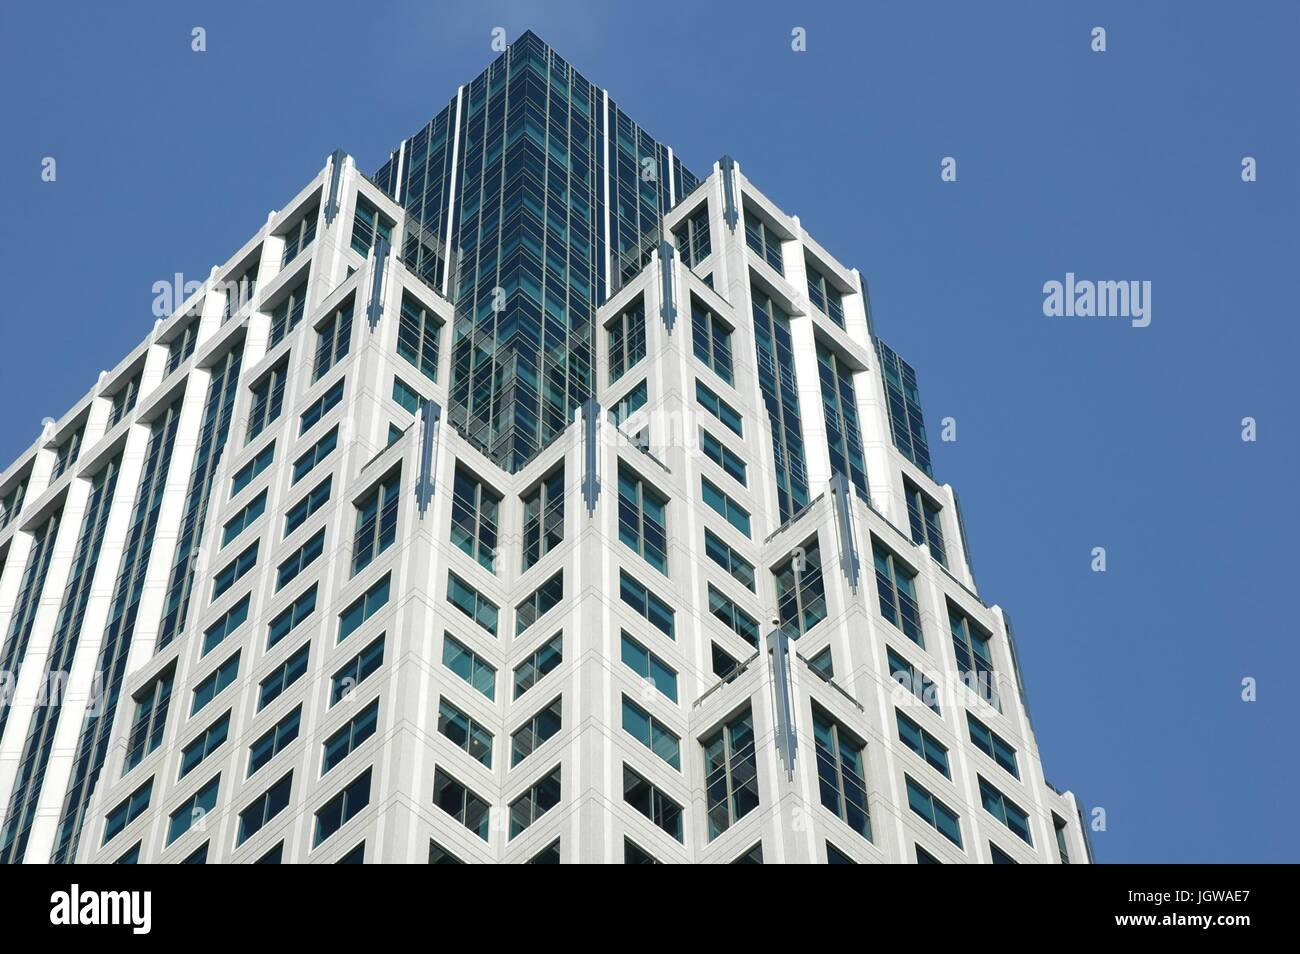 Modern deco architectural style stock photo alamy